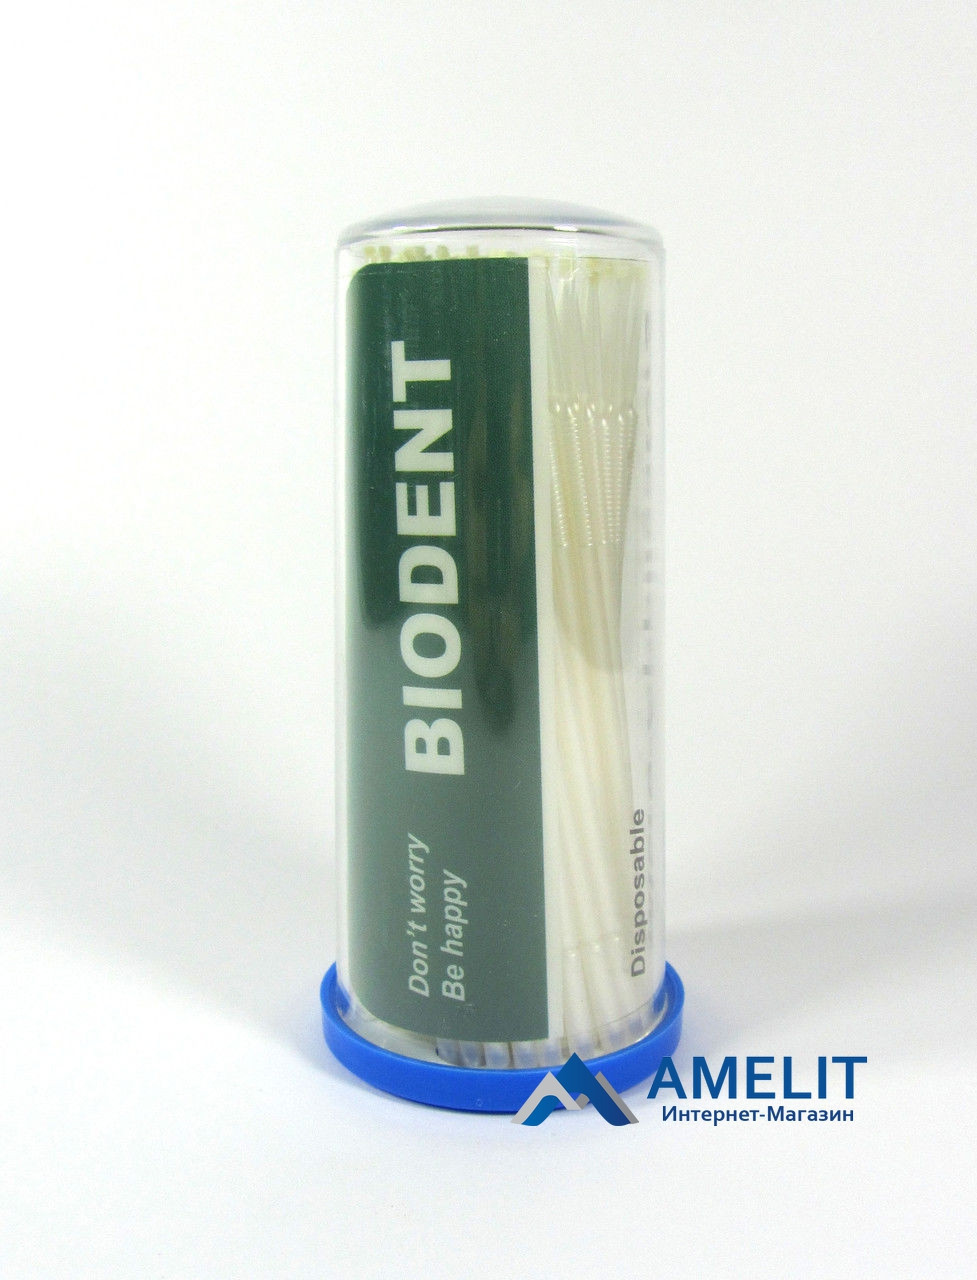 Микроаппликаторы Биодент (Biodent), Superfine/мелкие, 100шт./упак.